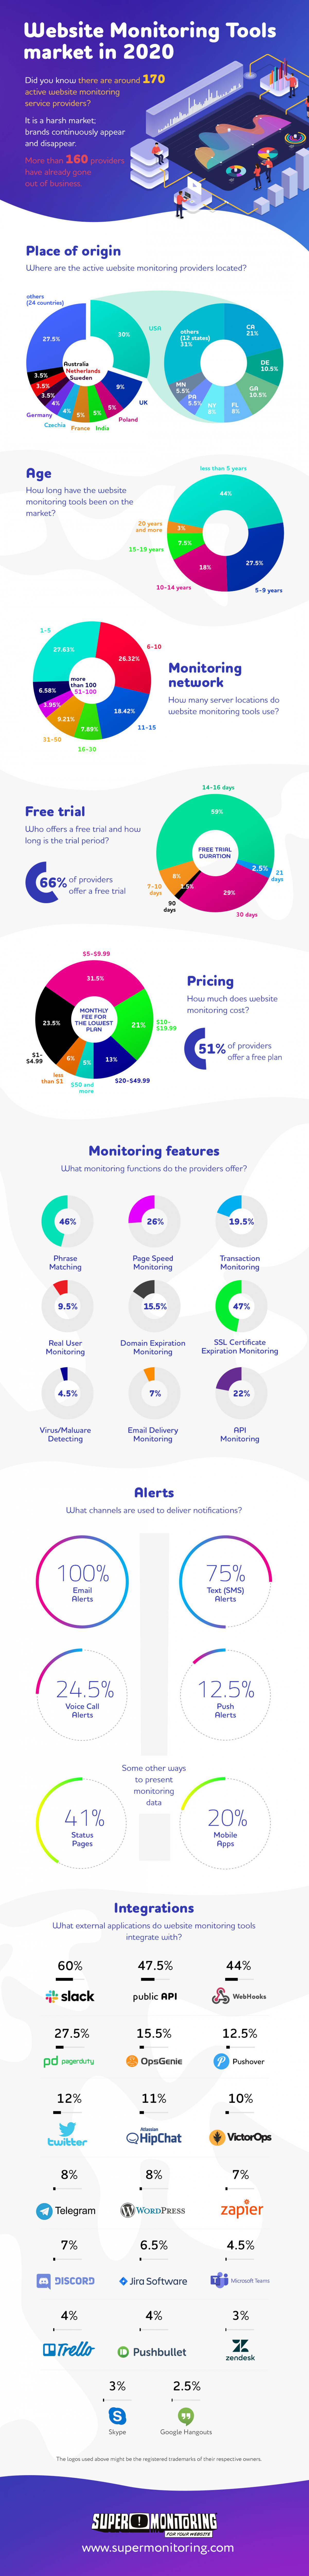 Website Monitoring Tools market in 2020 Infographic